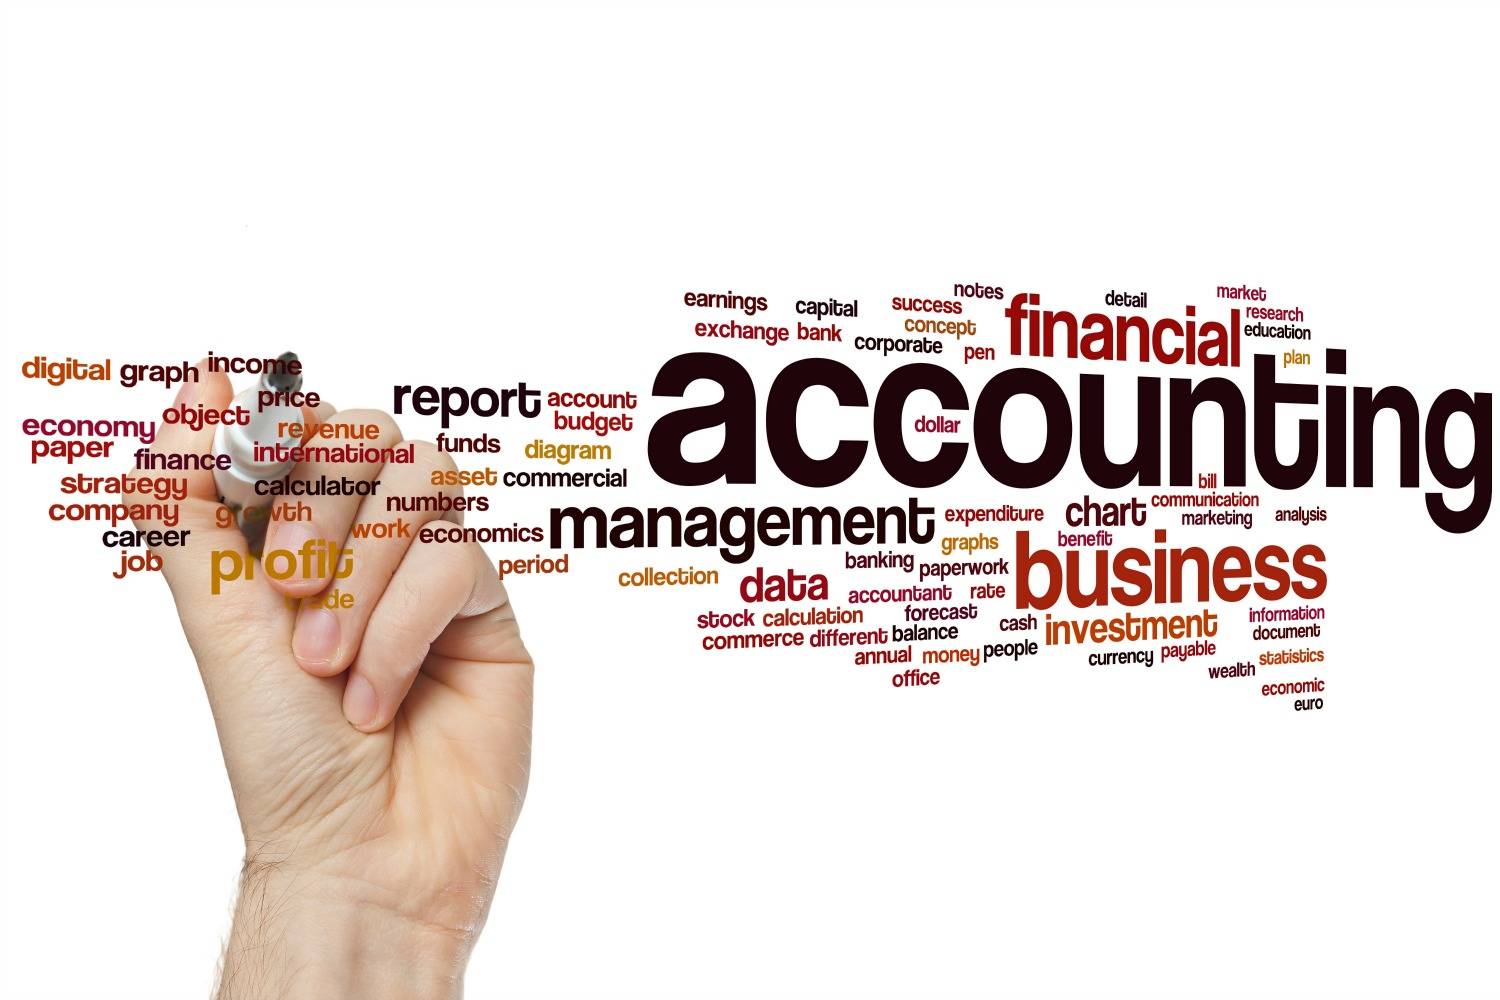 valuation in accounting research 1 introductionthe value relevance of accounting disclosures is the focus of numerous accounting studies frequently, the studies operationalize value relevance as the r 2 from regressions of stock prices on per share values of accounting earnings and book values of equity.